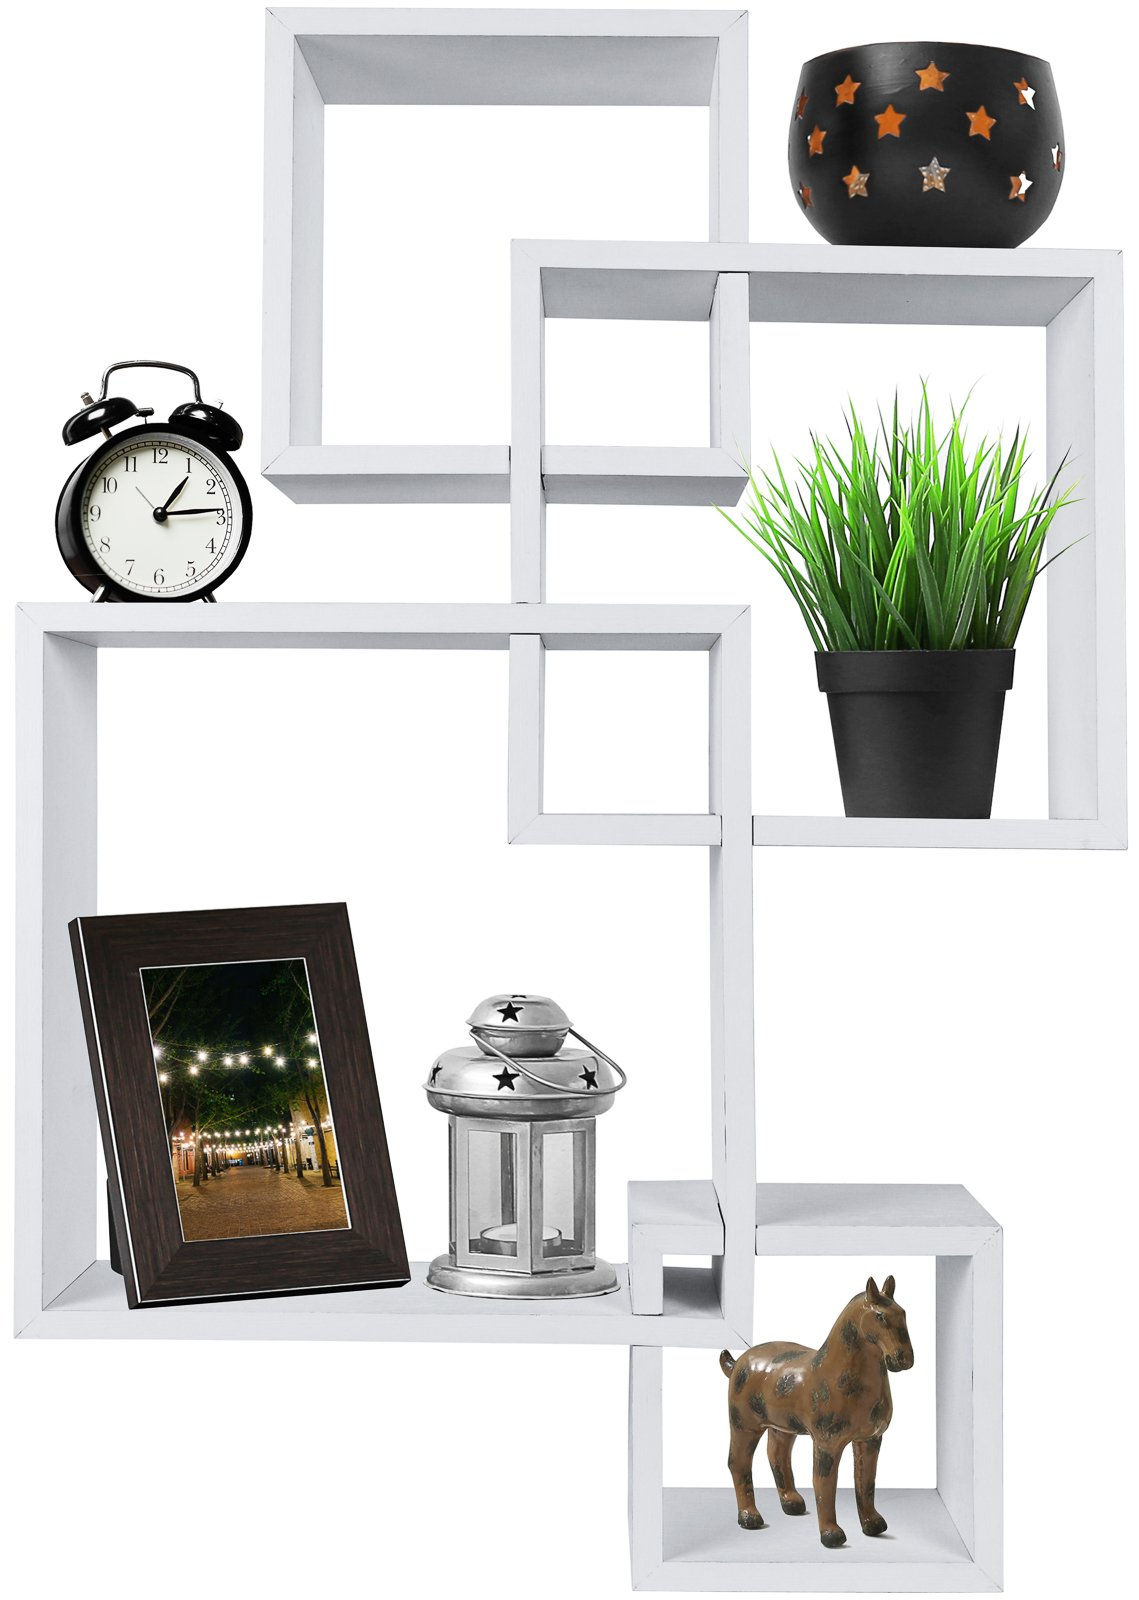 Greenco Decorative 4 Cube Intersecting Wall Mounted Floating Shelves- White Finish - Decorative intersecting floating shelves Made of durable MDF laminate. Beautiful White finish that suits almost any decor. Easy to mount with all necessary hardware Included. Hardware is not visable when mounted - wall-shelves, living-room-furniture, living-room - 71p1bOkt4PL -